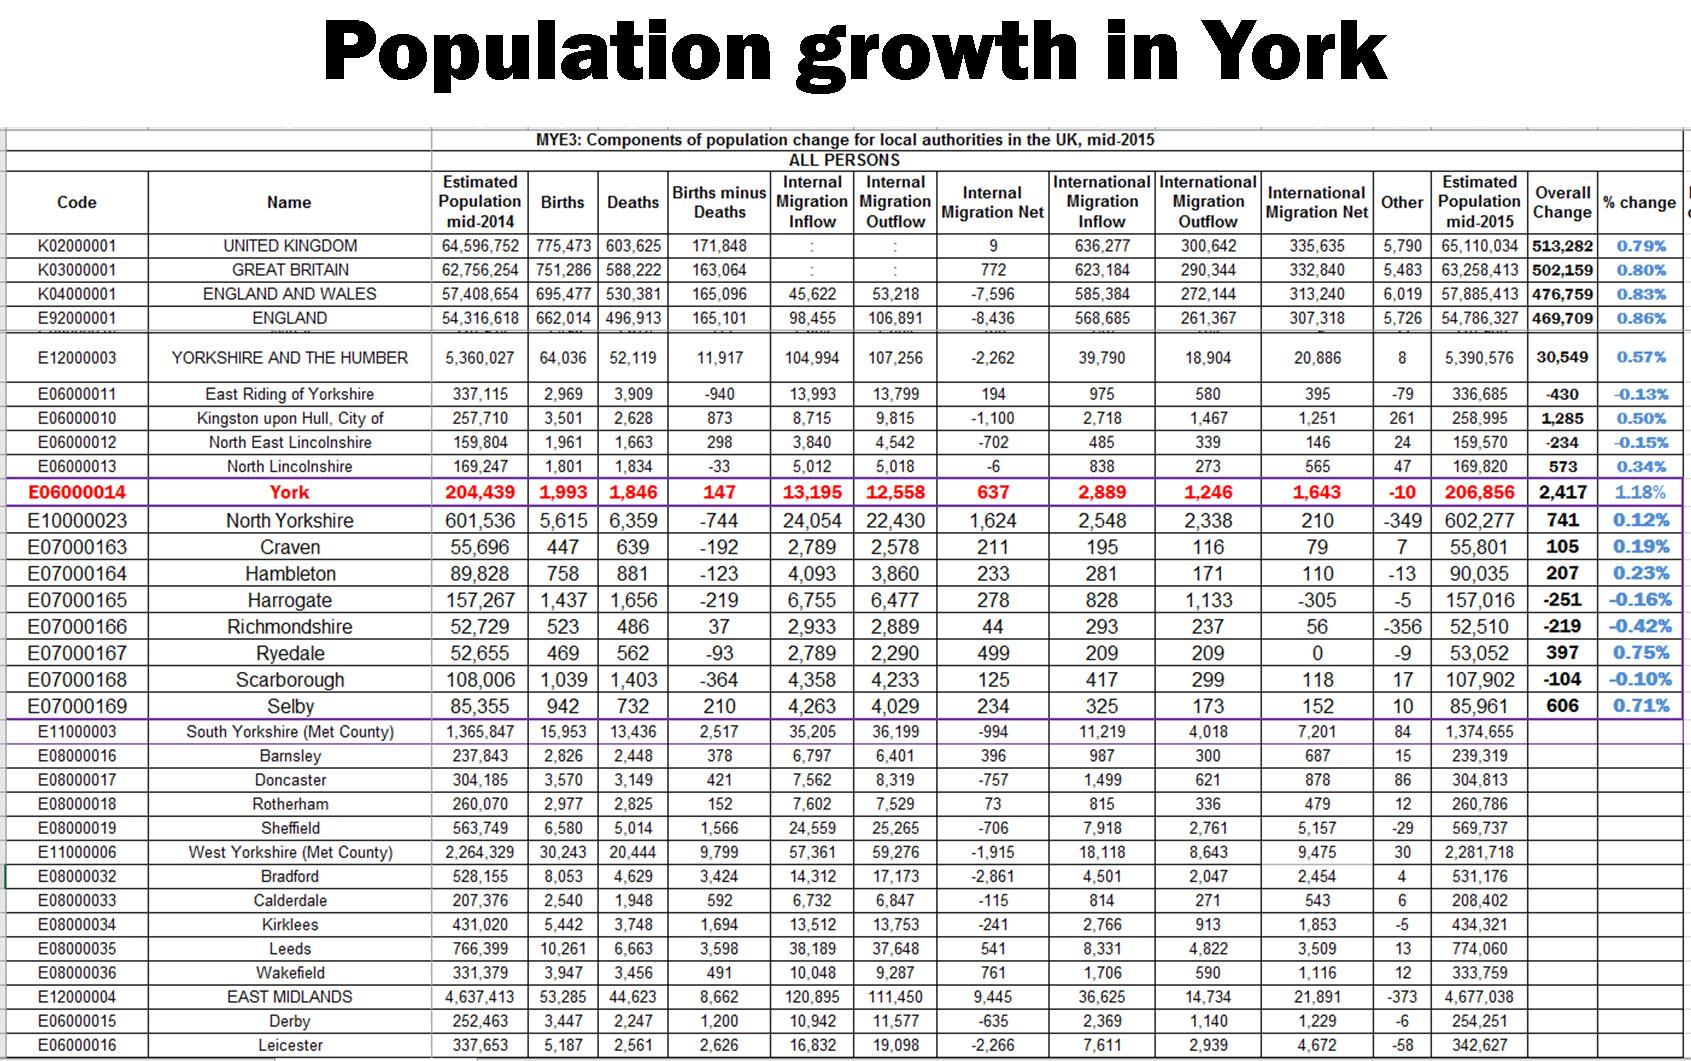 Population growth in York